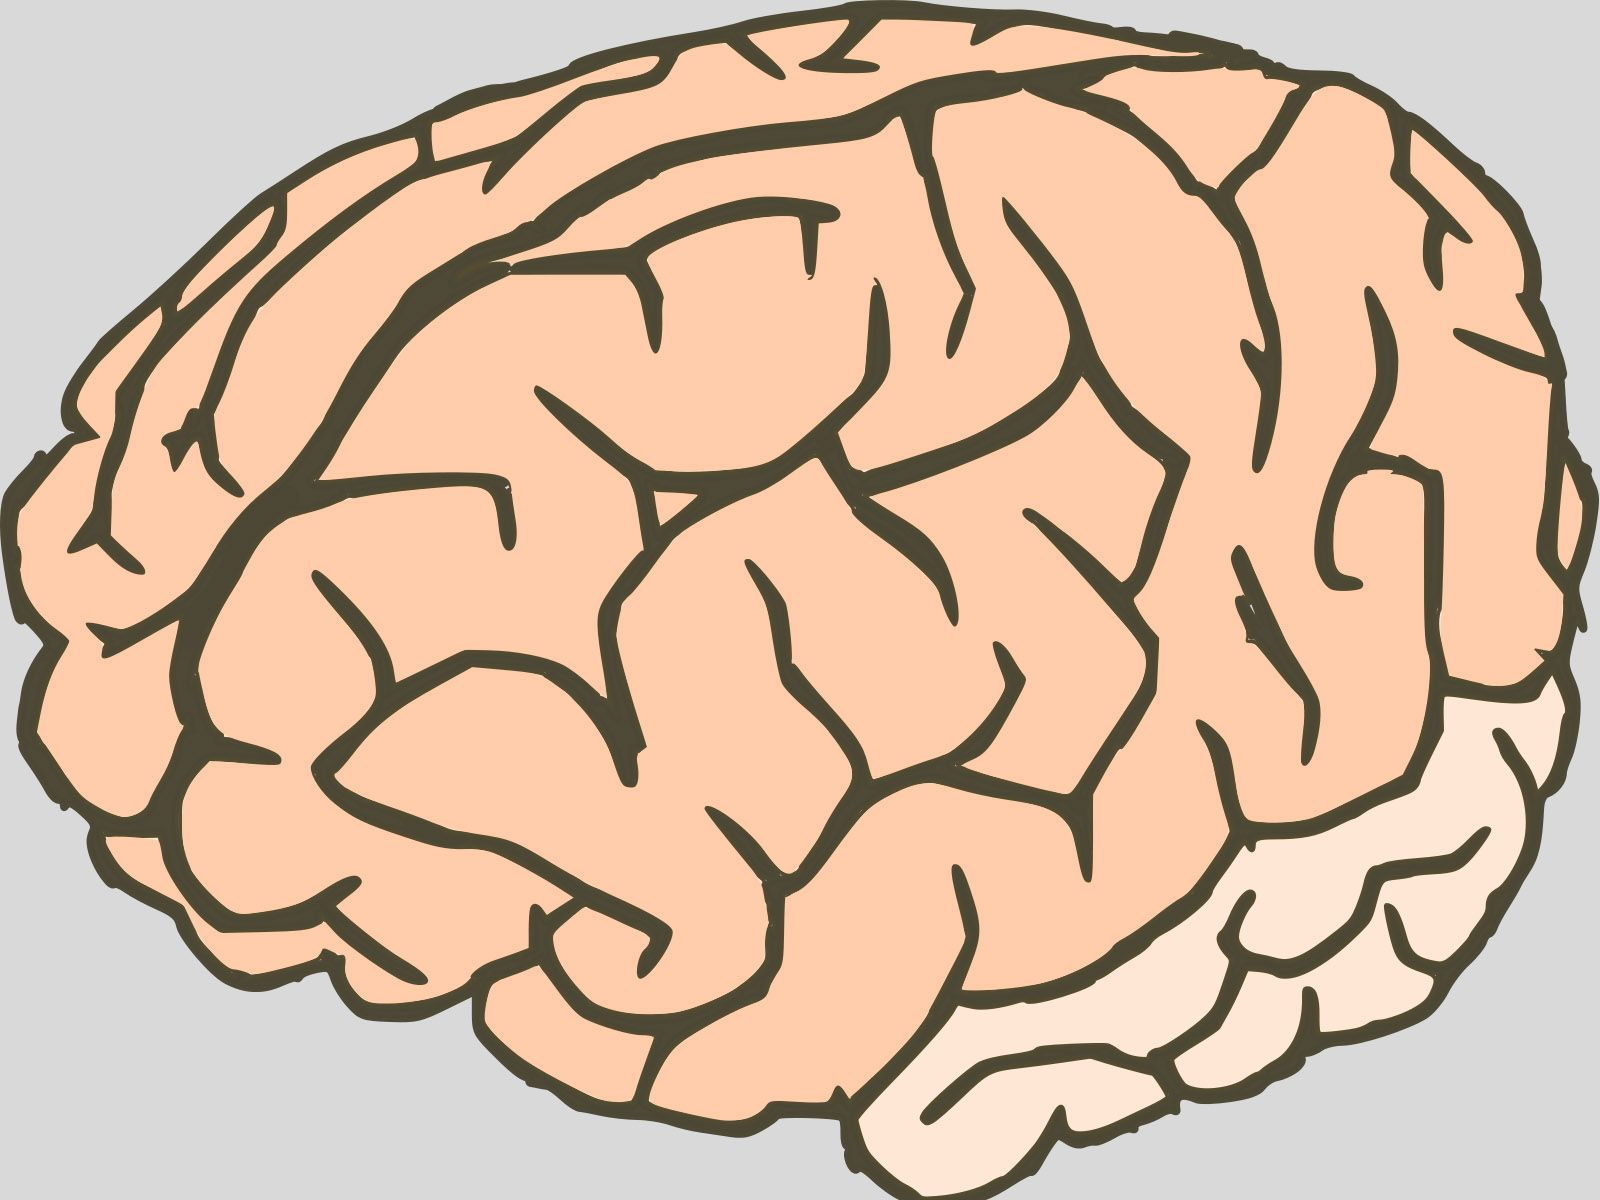 Human Brain Outline Ppt Backgrounds For Powerpoint Templates Human Brain Outline Ppt Pictures Human Brain Outli Brain Drawing Clip Art Great Minds Think Alike